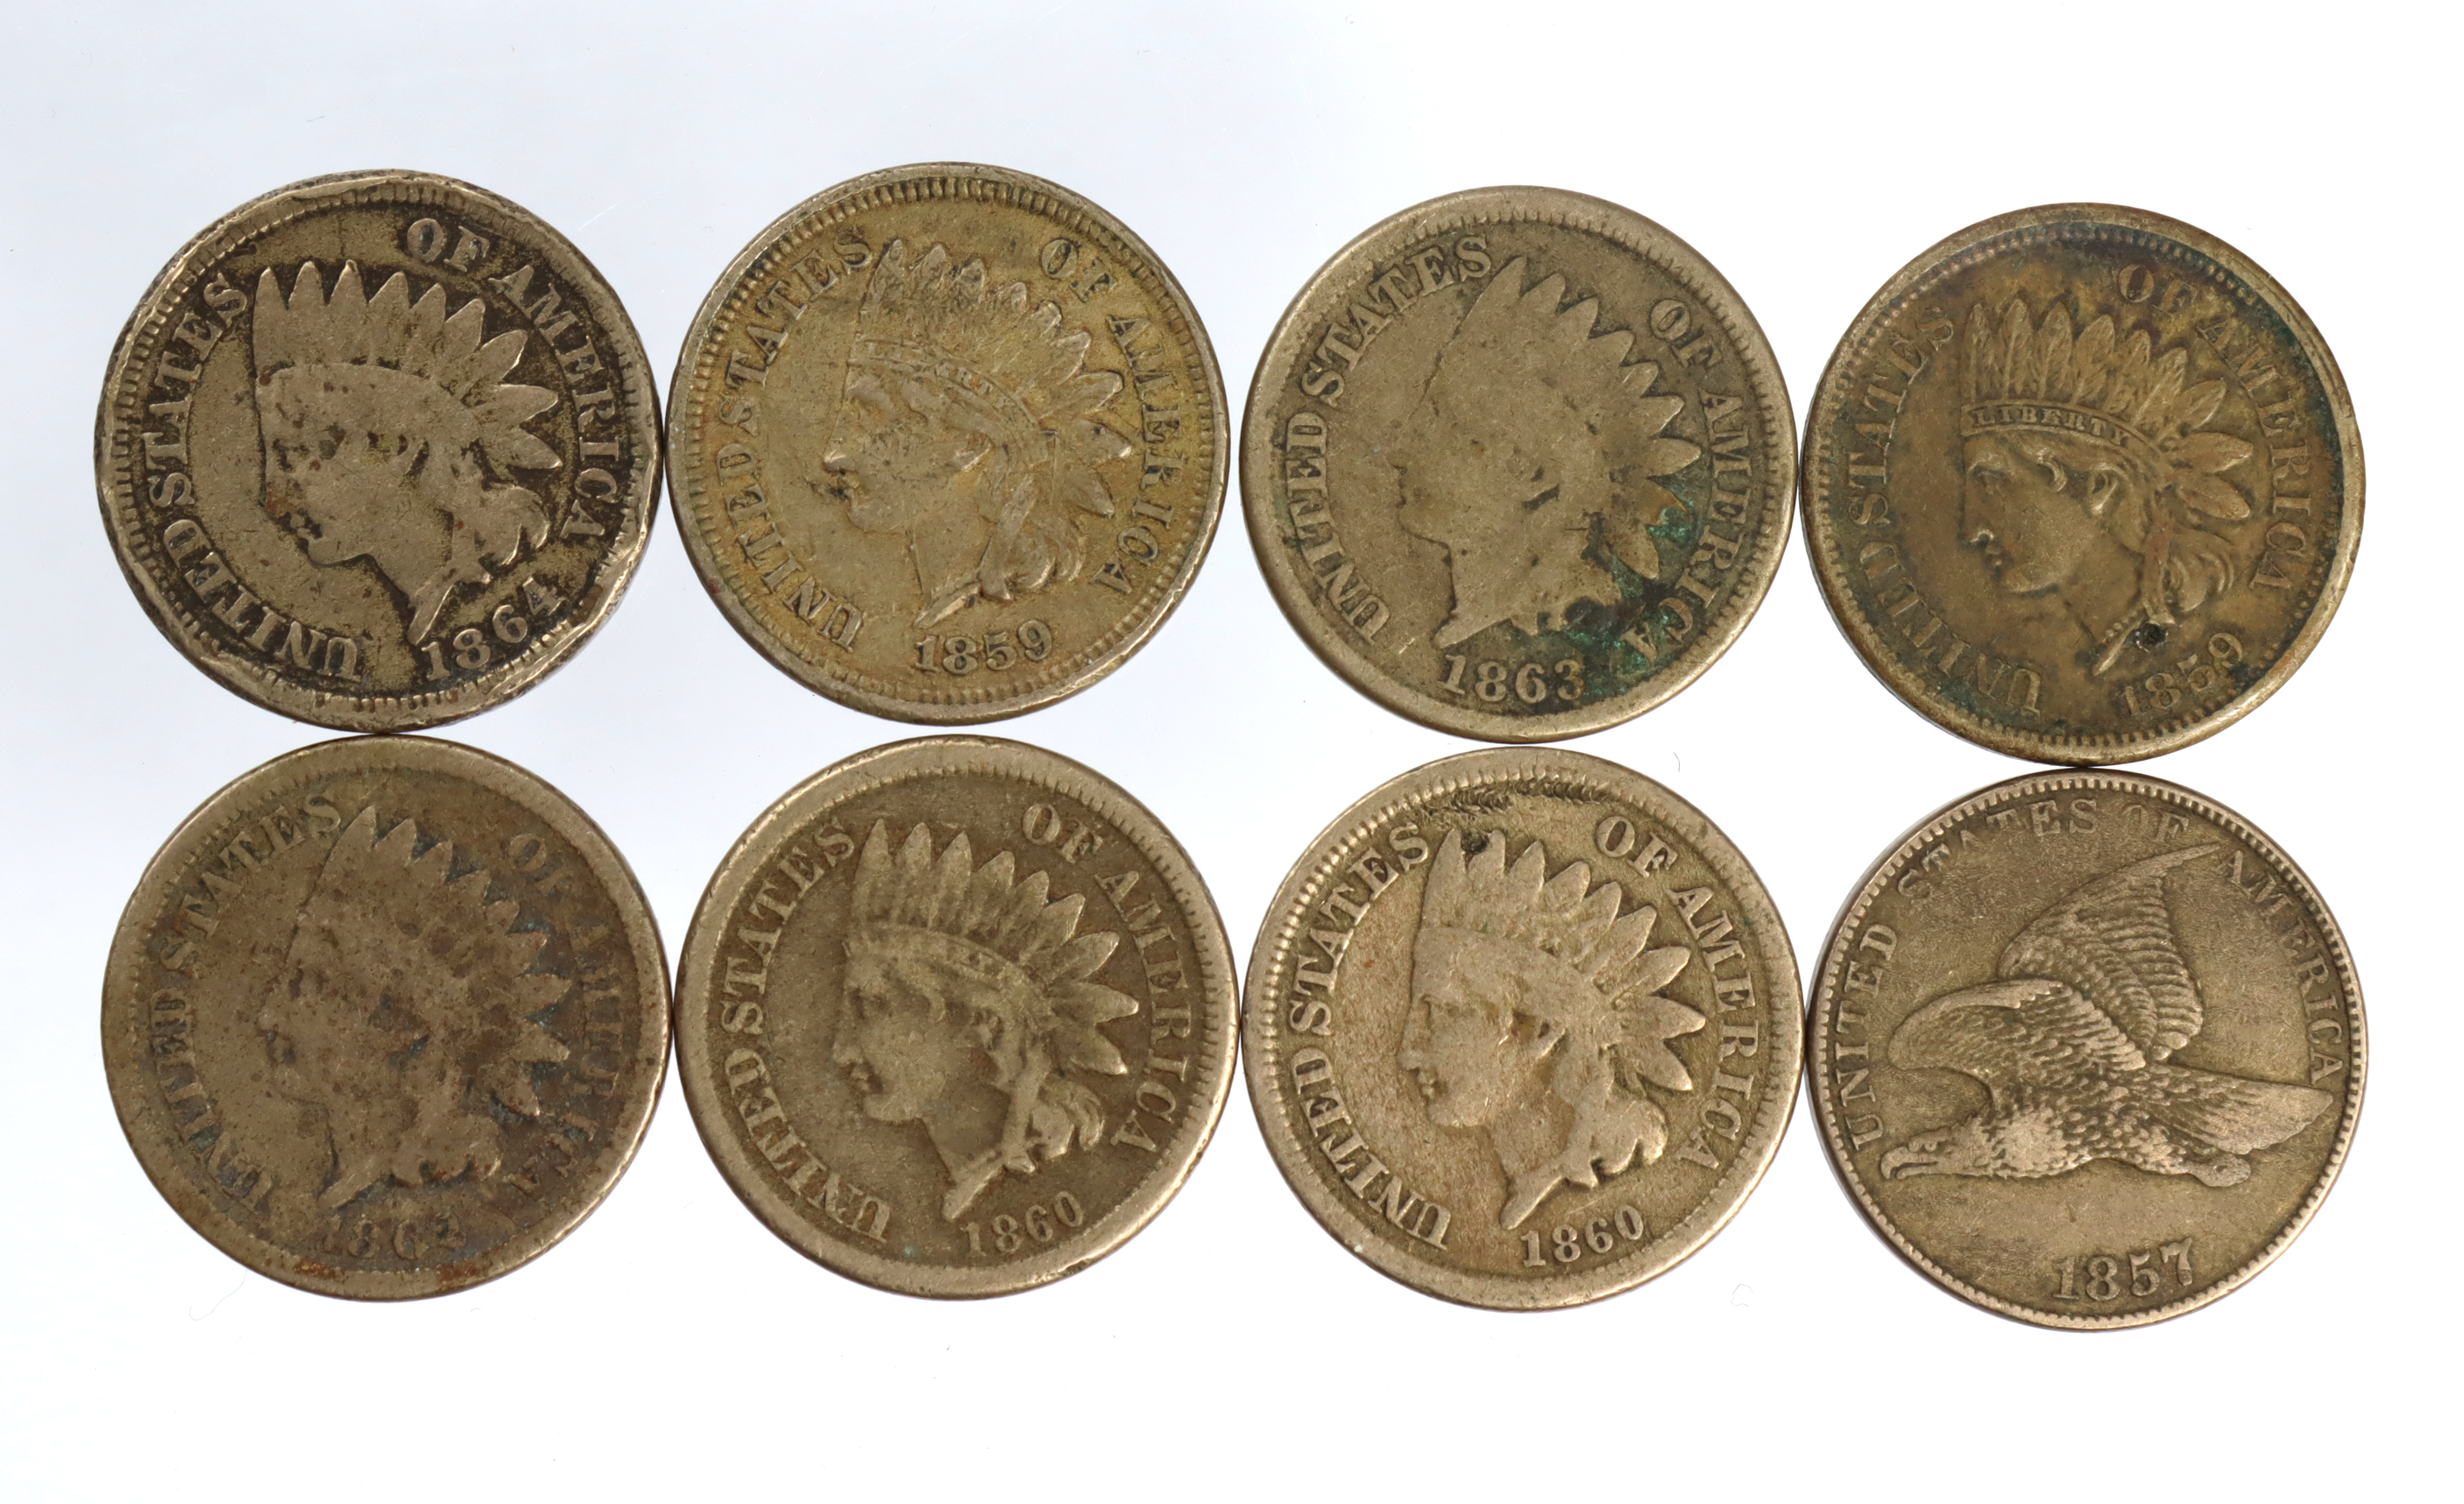 USA Copper-Nickel Cents (8) including 1857 flying eagle nVF